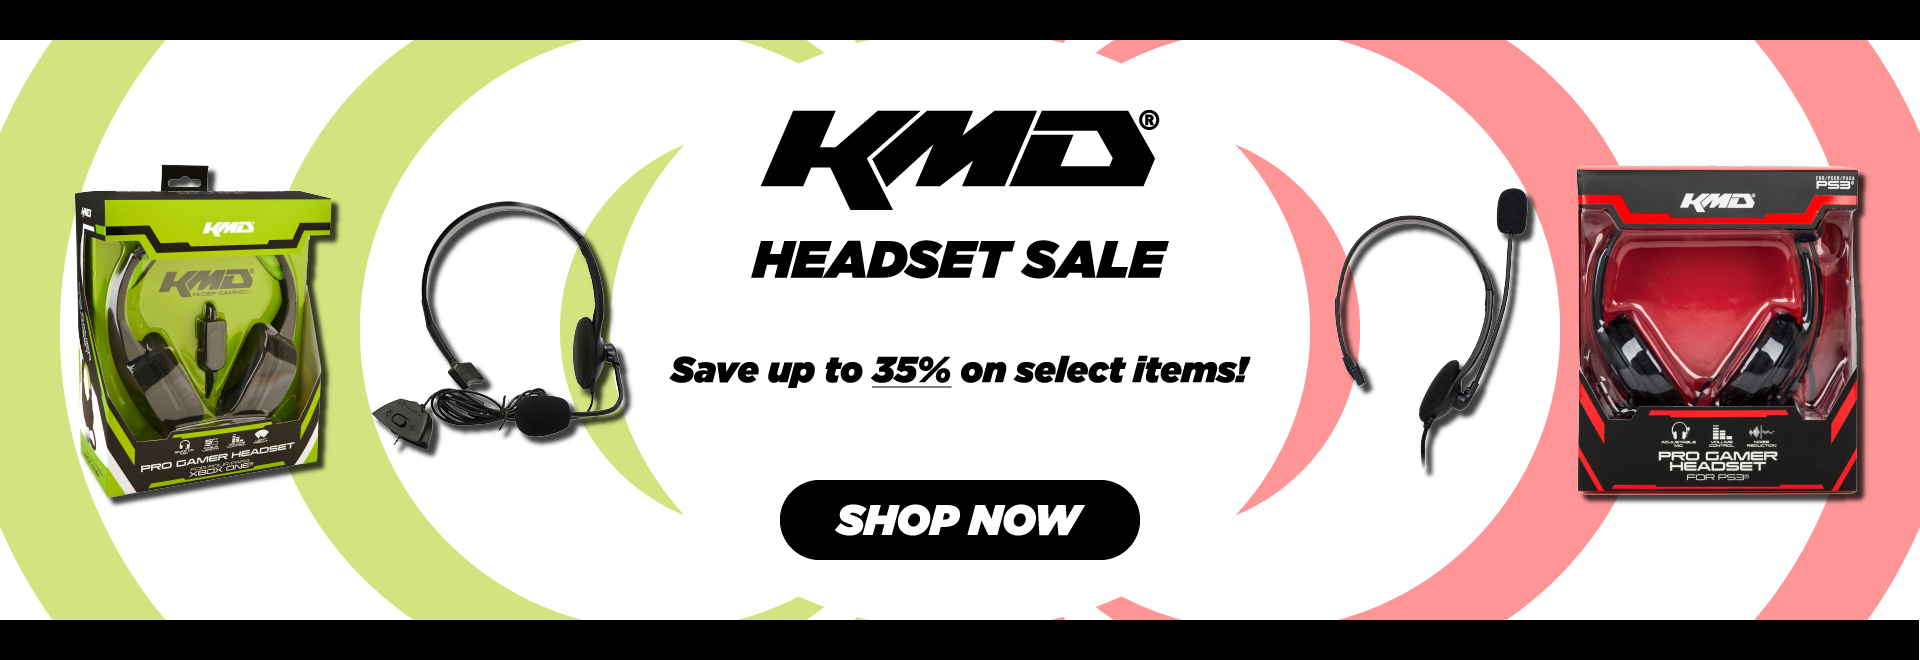 KMD, Headset, Xbox, Xbox 360, Xbox One, PS3, PS4, Microphone